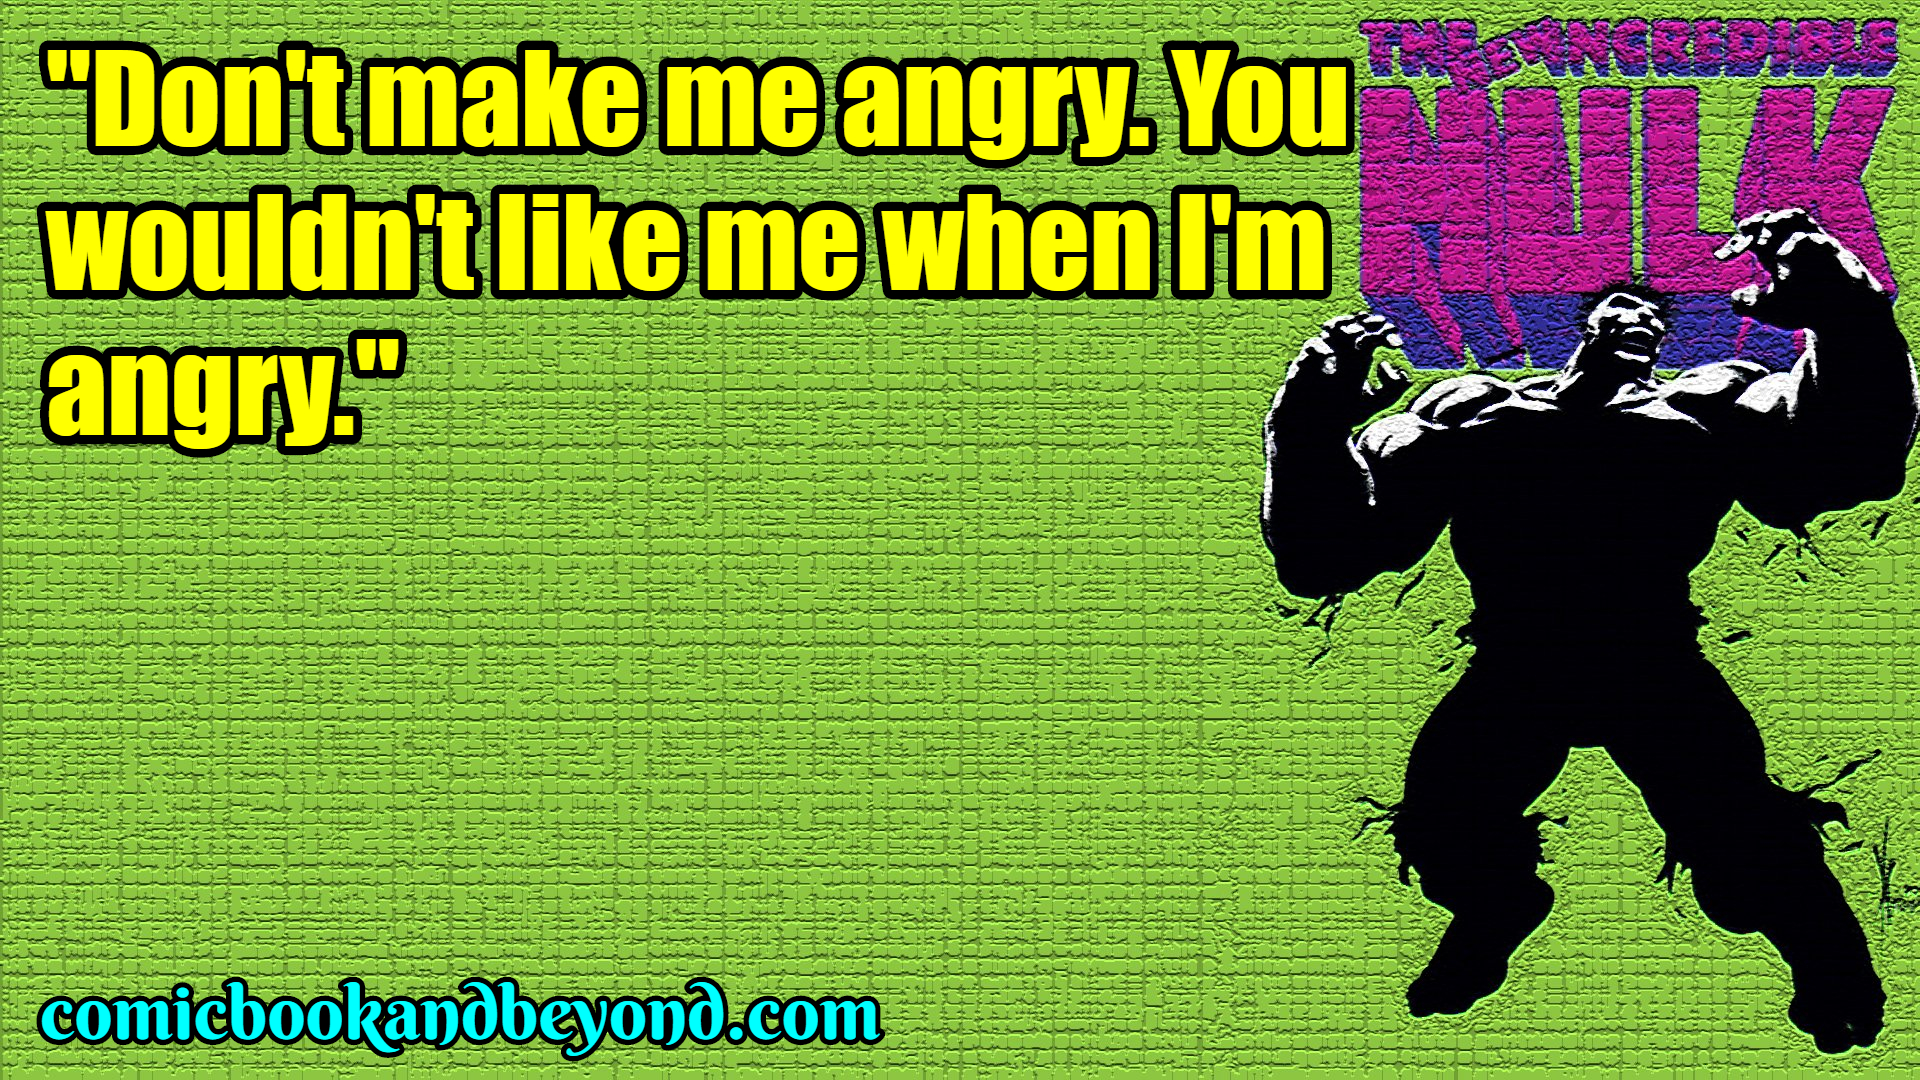 The Incredible Hulk popular quotes